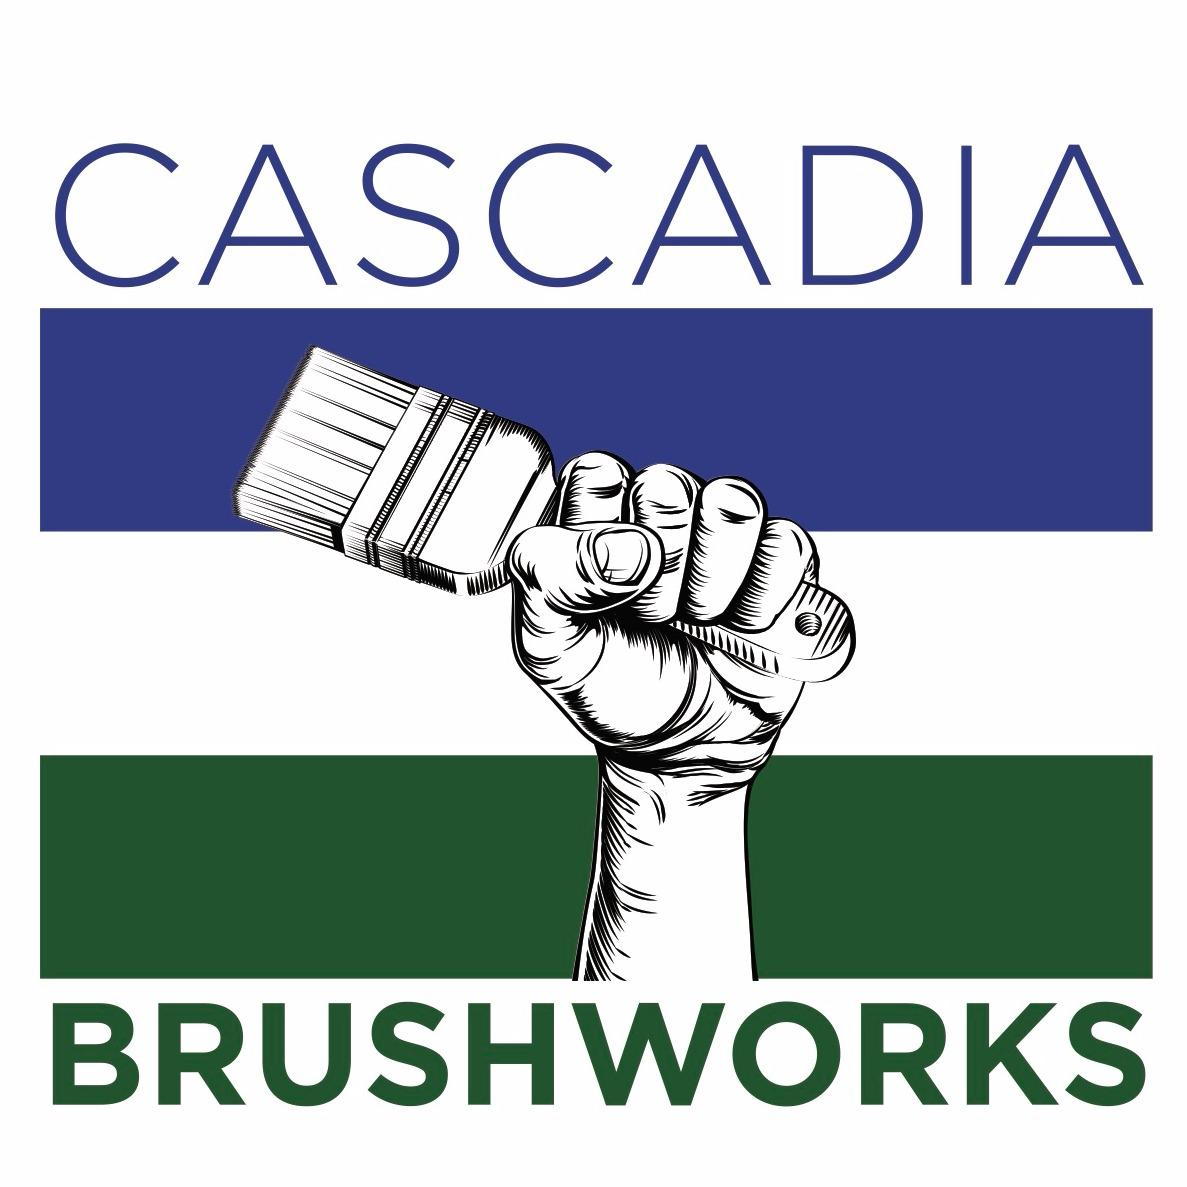 Cascadia Brushworks LLC